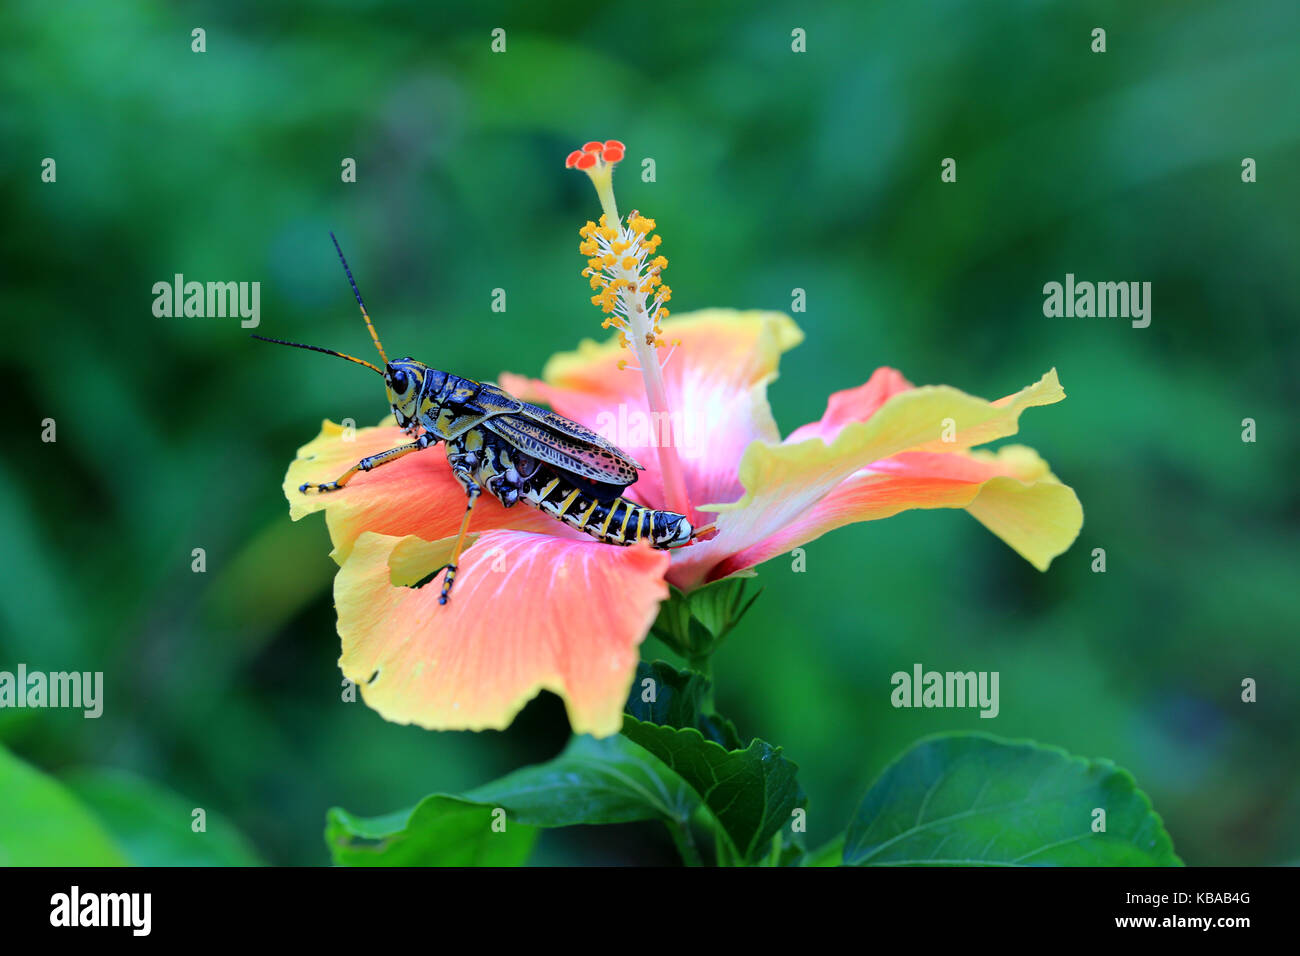 Lubber Grasshopper on Hibiscus flower, South Carolina - Stock Image